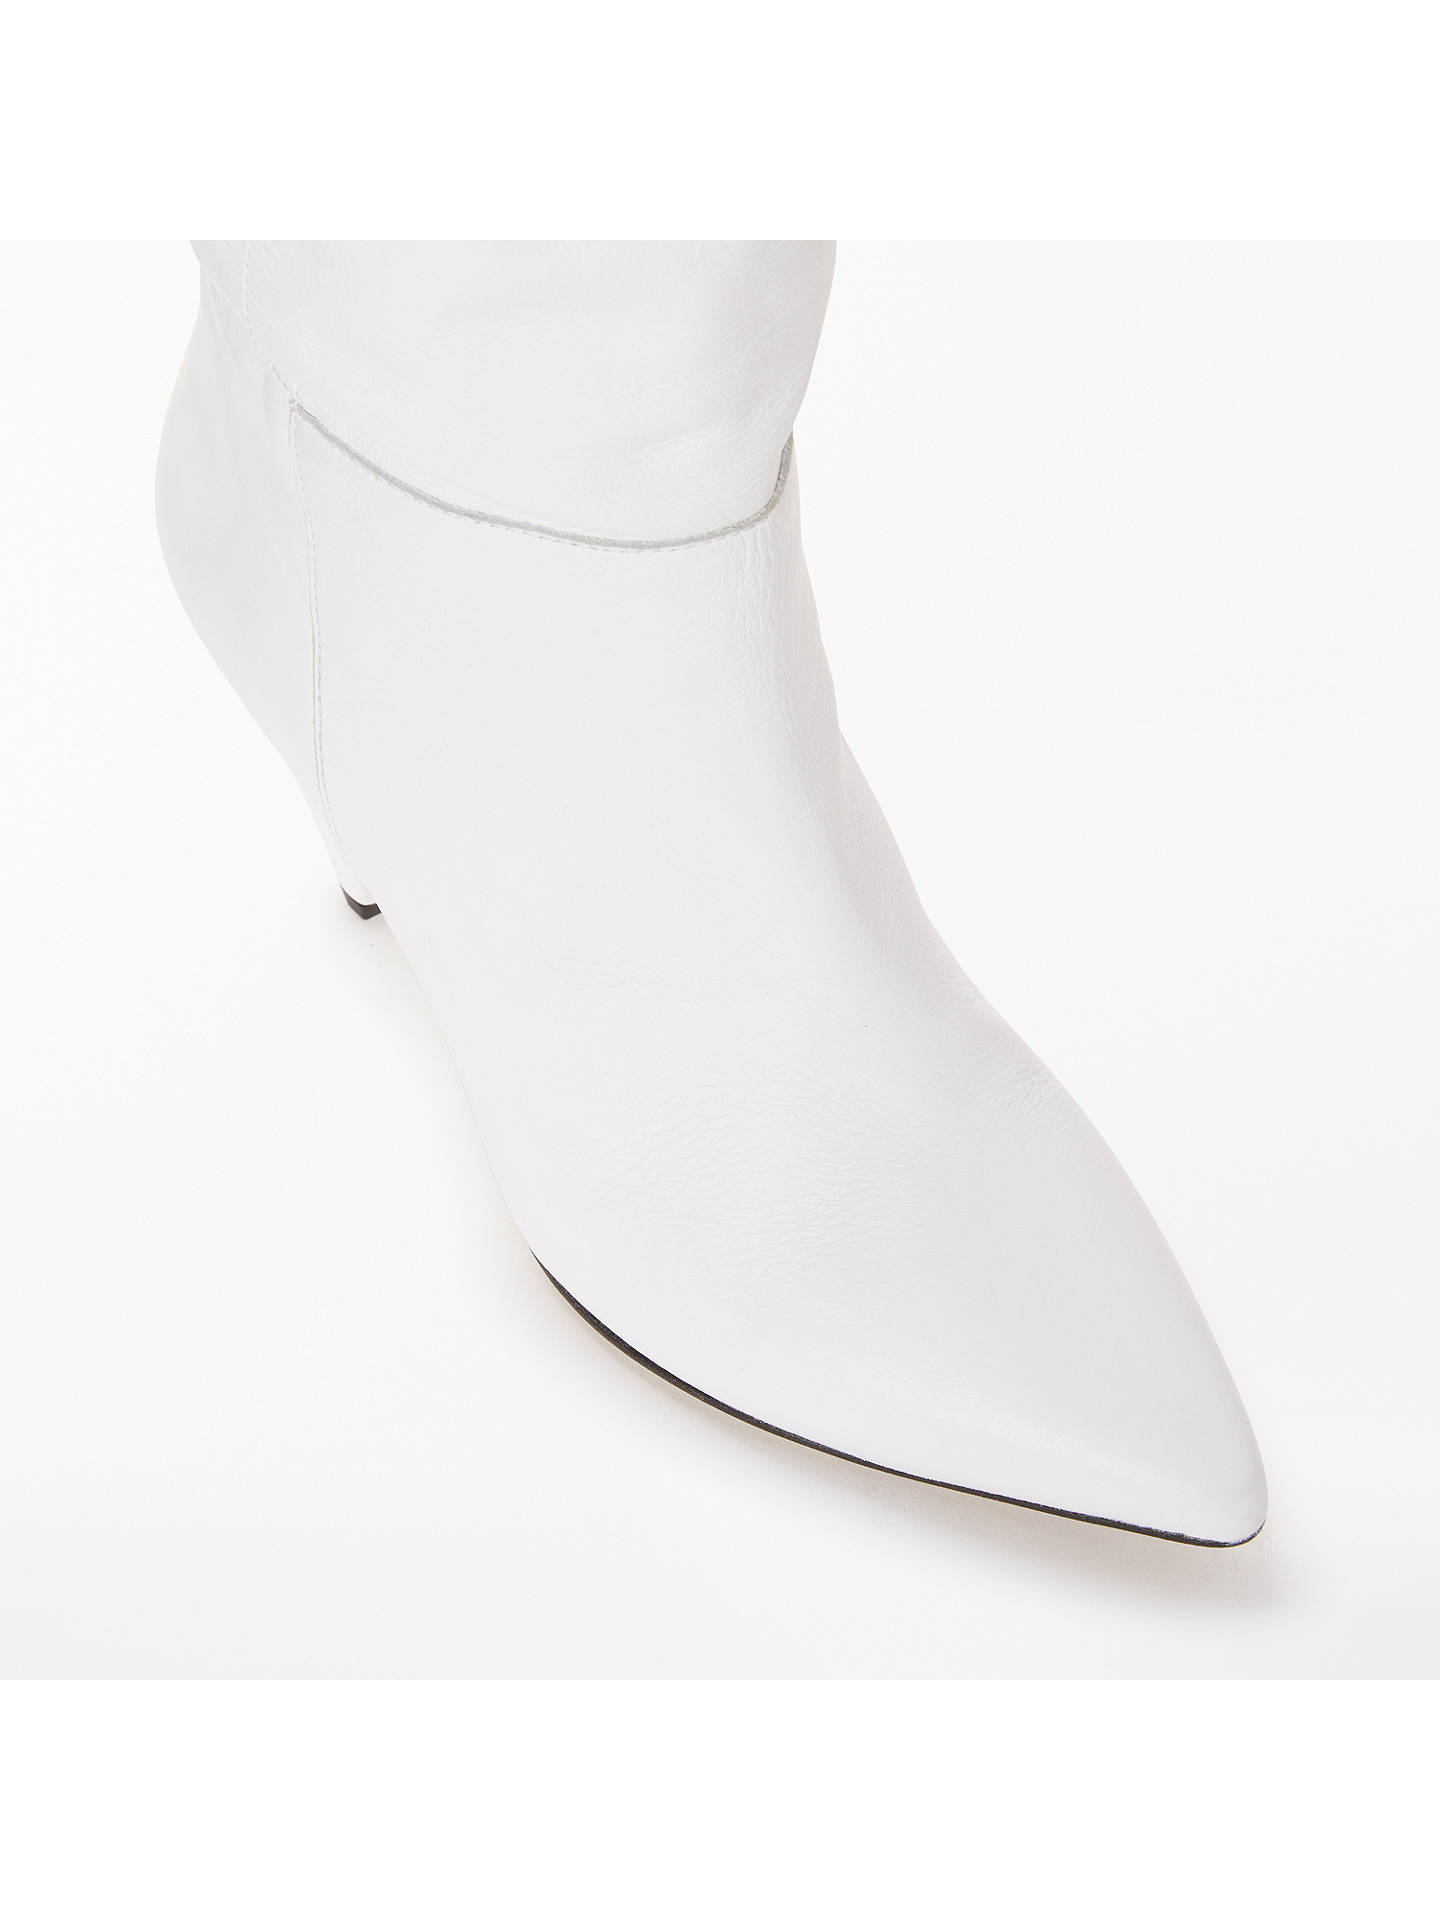 BuyKin Sibylla Leather Cone Heel Knee High Boots, White, 6 Online at johnlewis.com